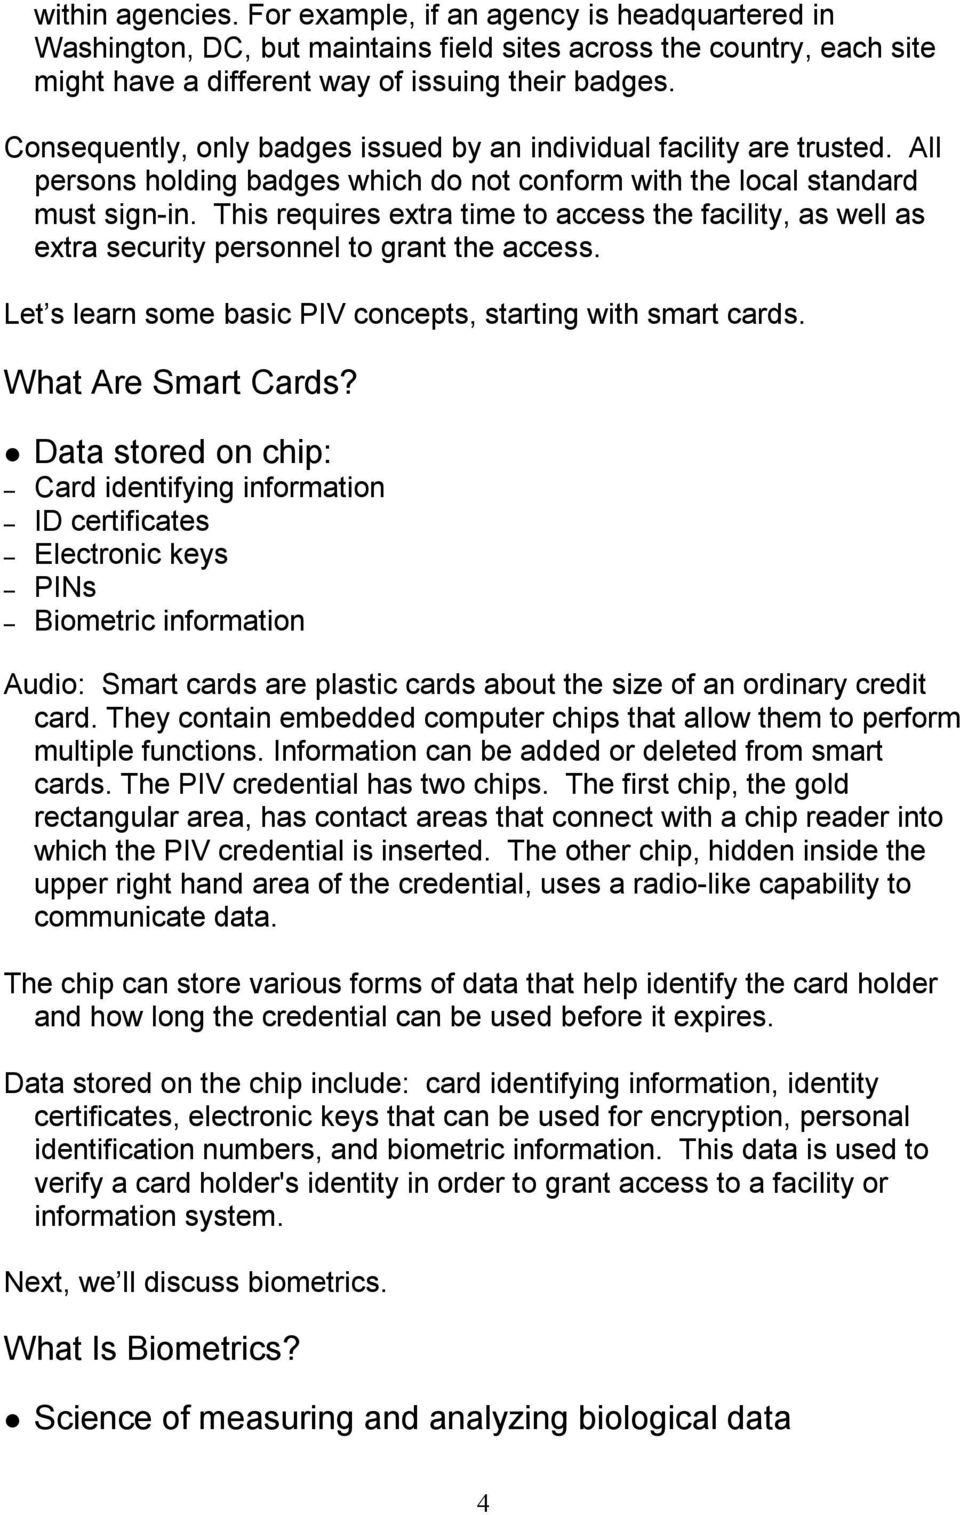 This requires extra time to access the facility, as well as extra security personnel to grant the access. Let s learn some basic PIV concepts, starting with smart cards. What Are Smart Cards?